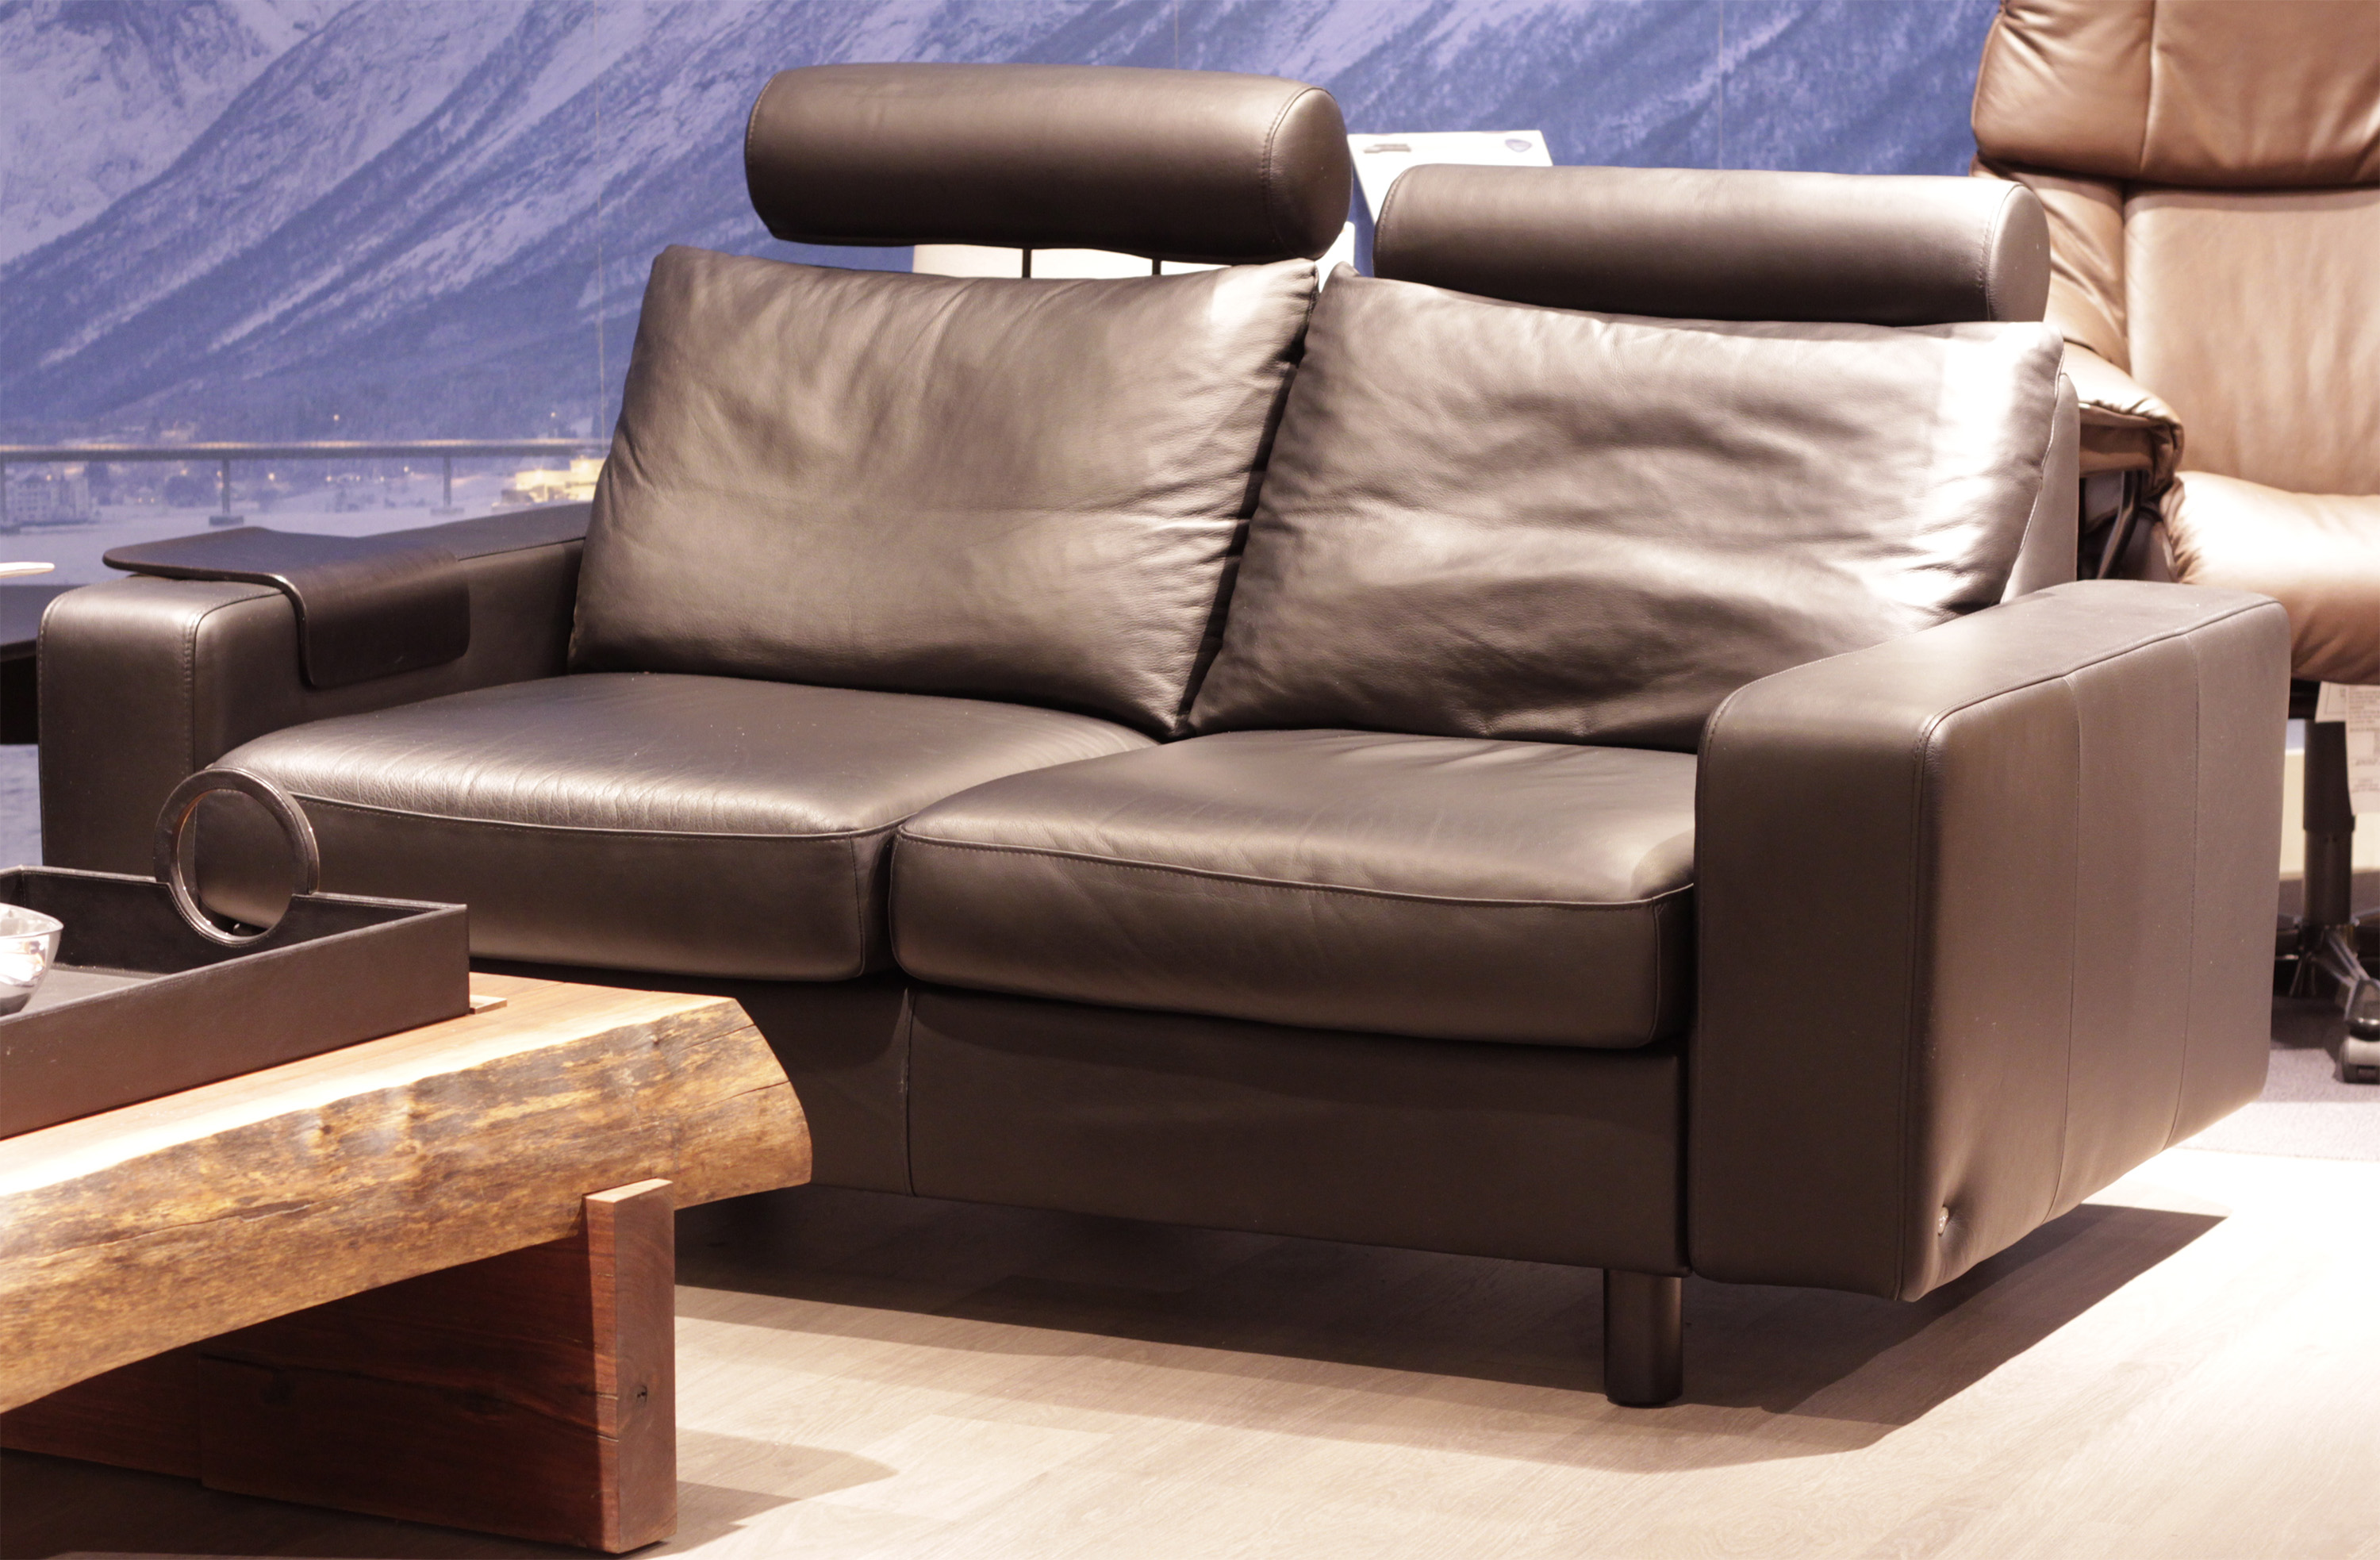 Stressless Sofa Leather Stressless E200 Loveseat Sofa In Paloma Rock Leather By